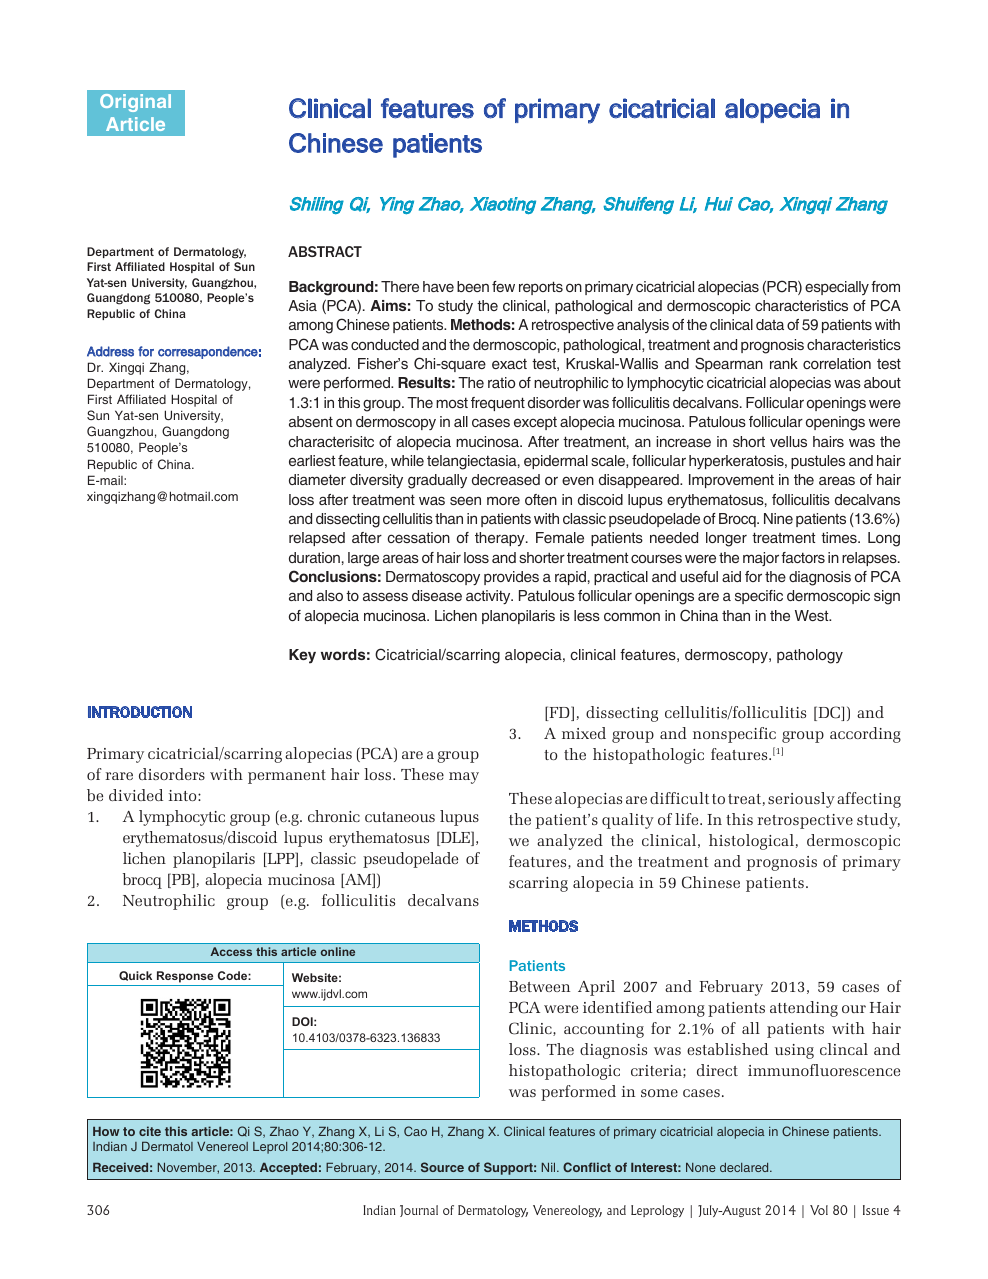 Clinical features of primary cicatricial alopecia in Chinese